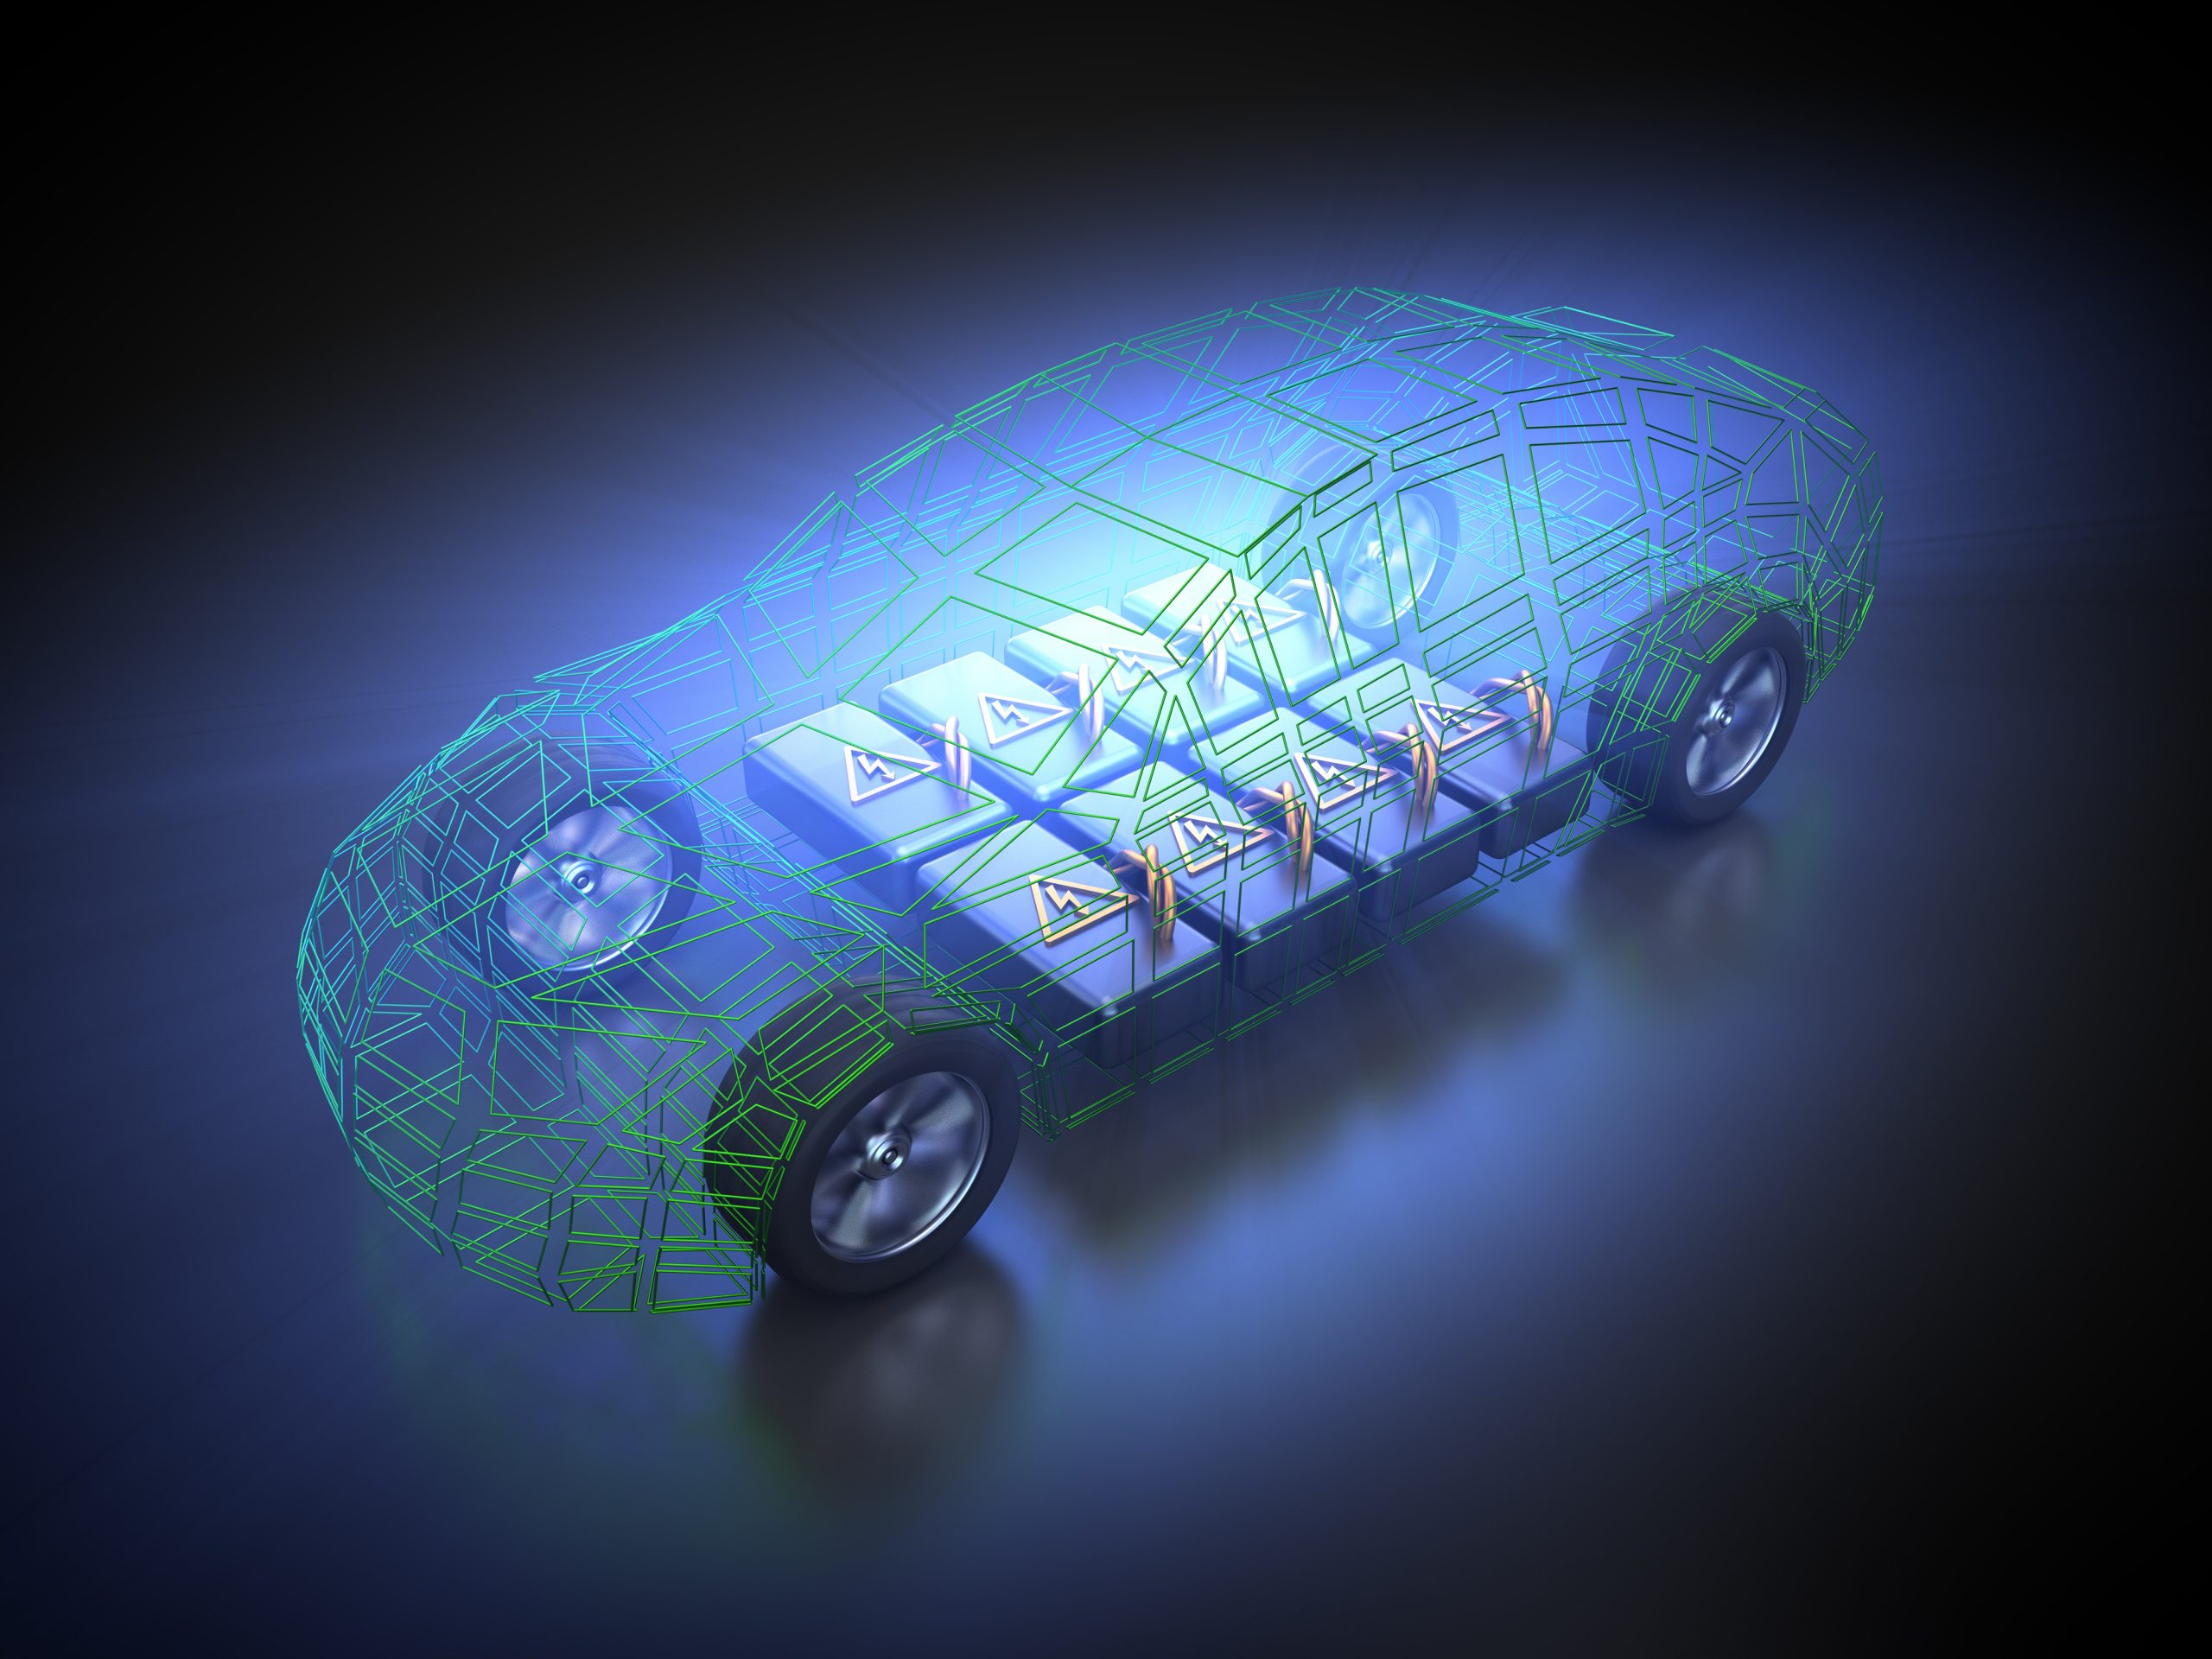 General Motors and LG Chem Joint Venture – How Does This Differ From Tesla and Panasonic?